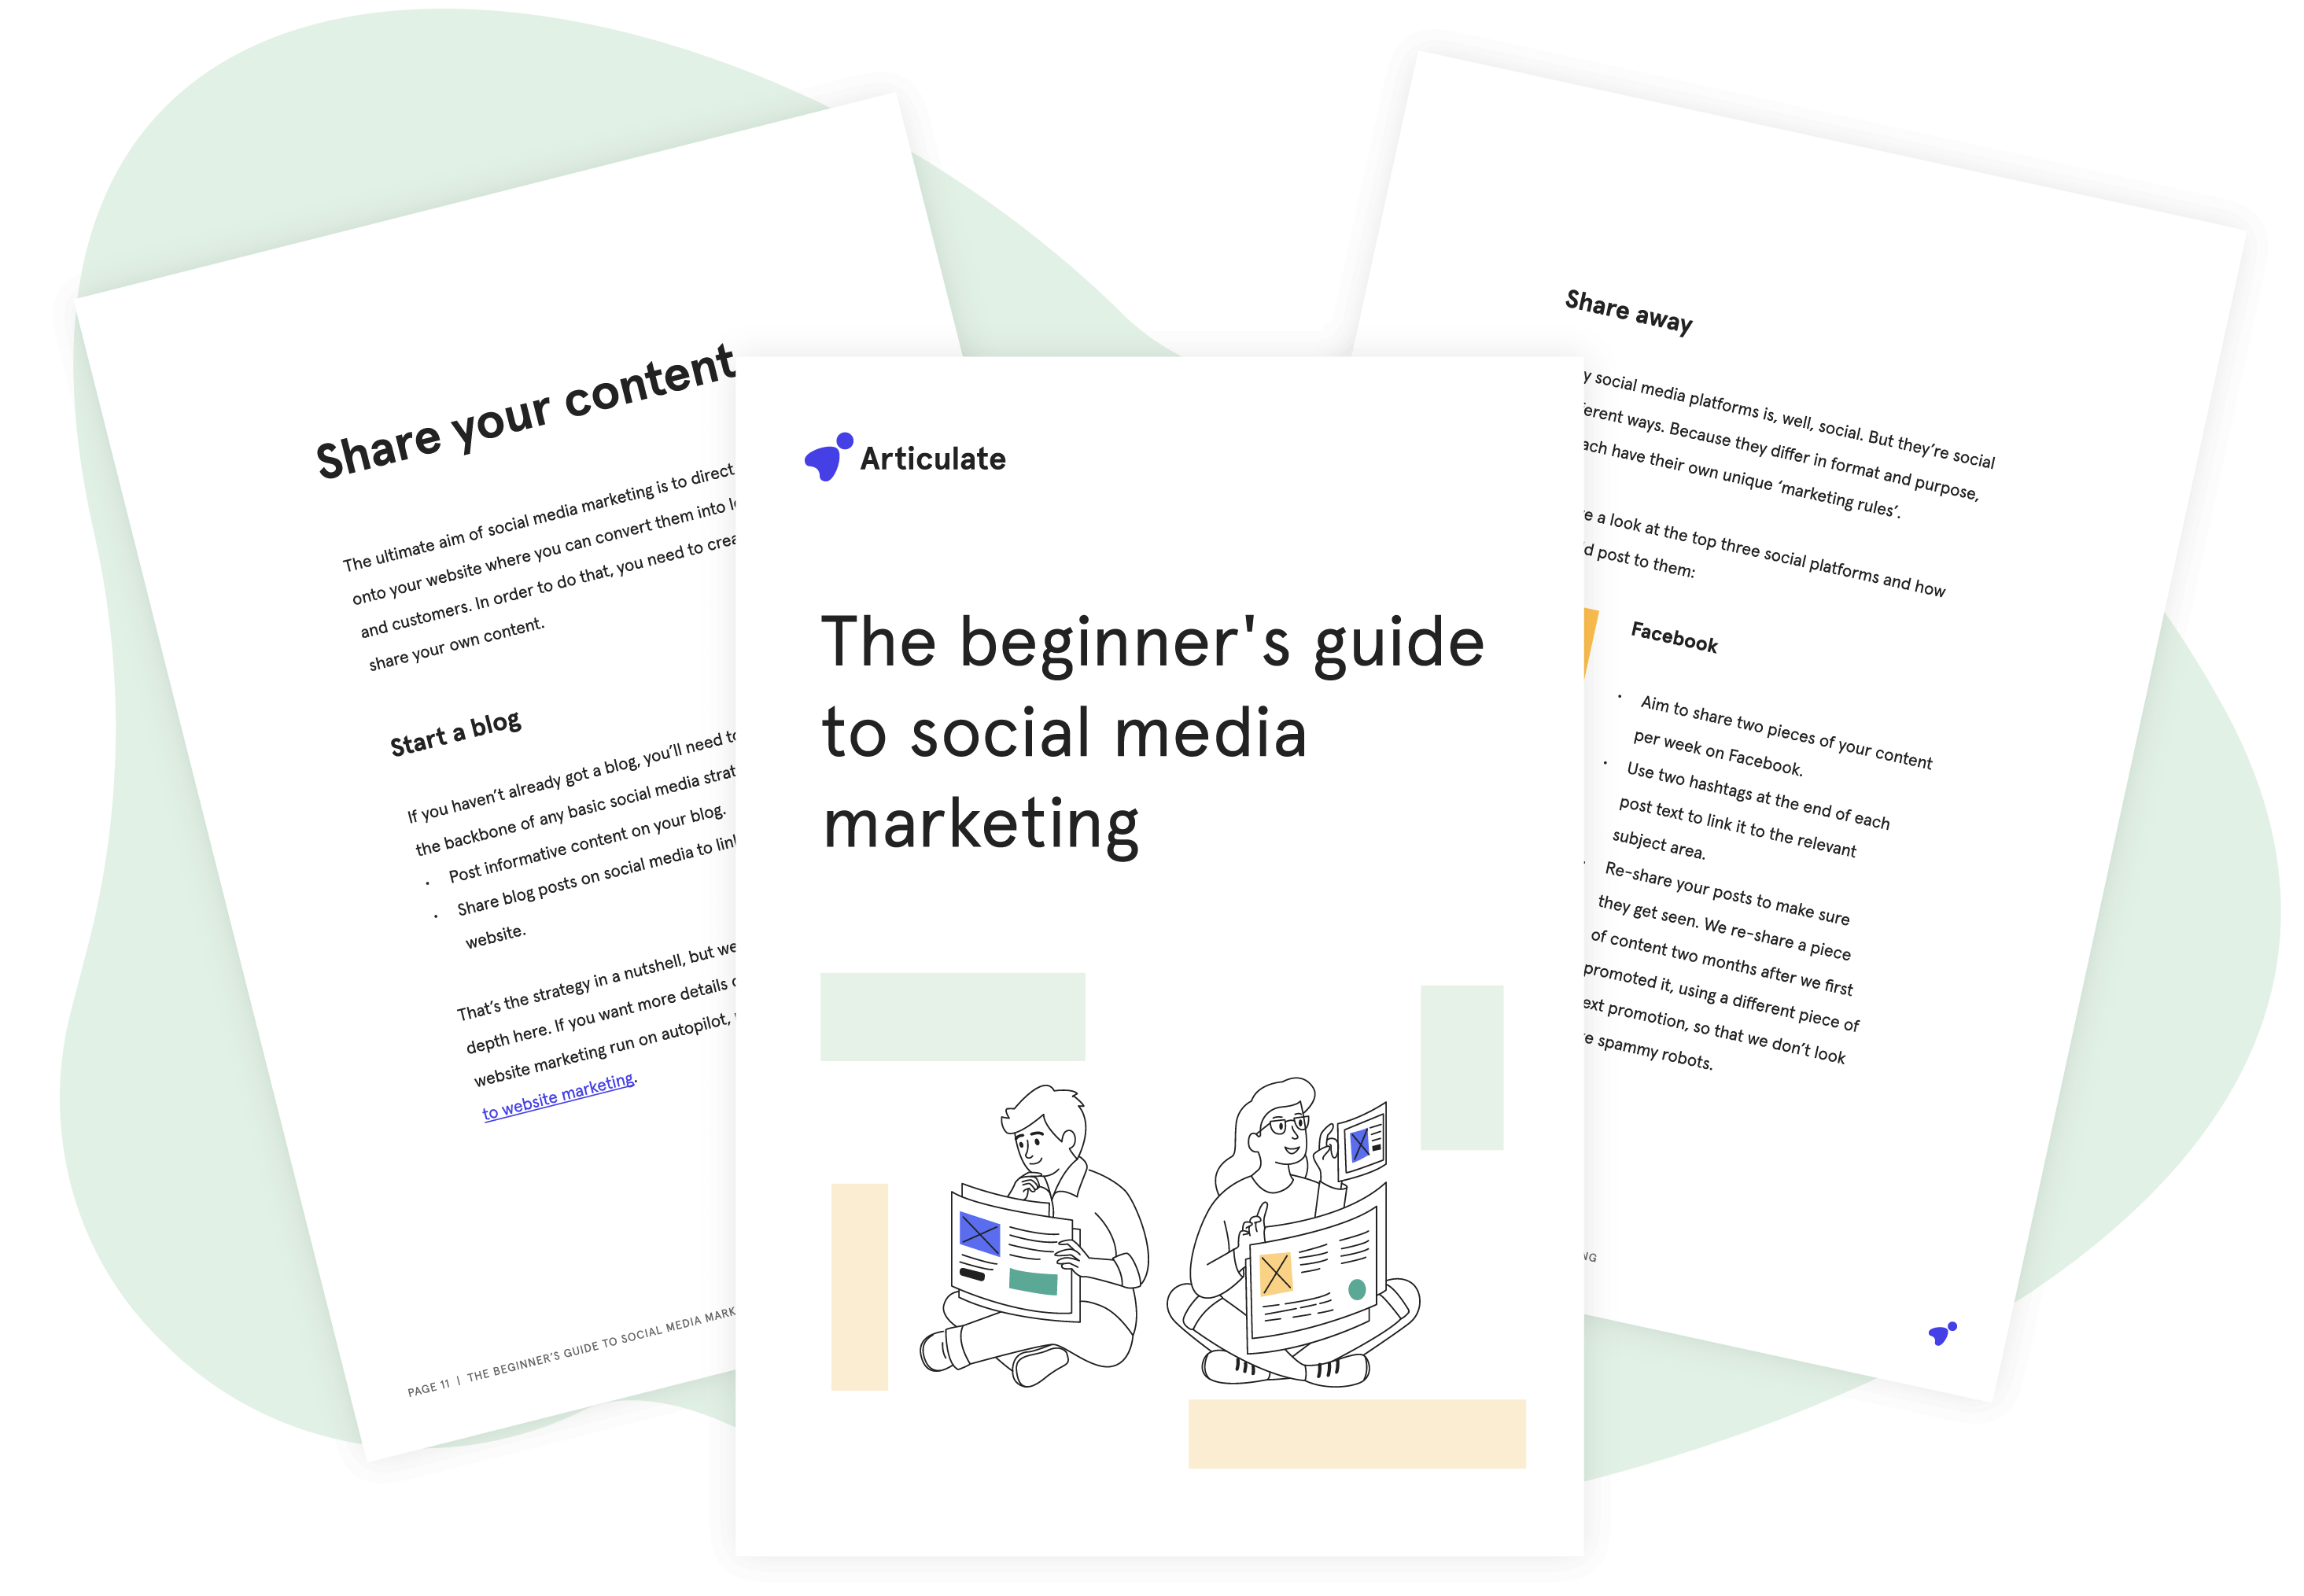 The beginners guide to social media marketing